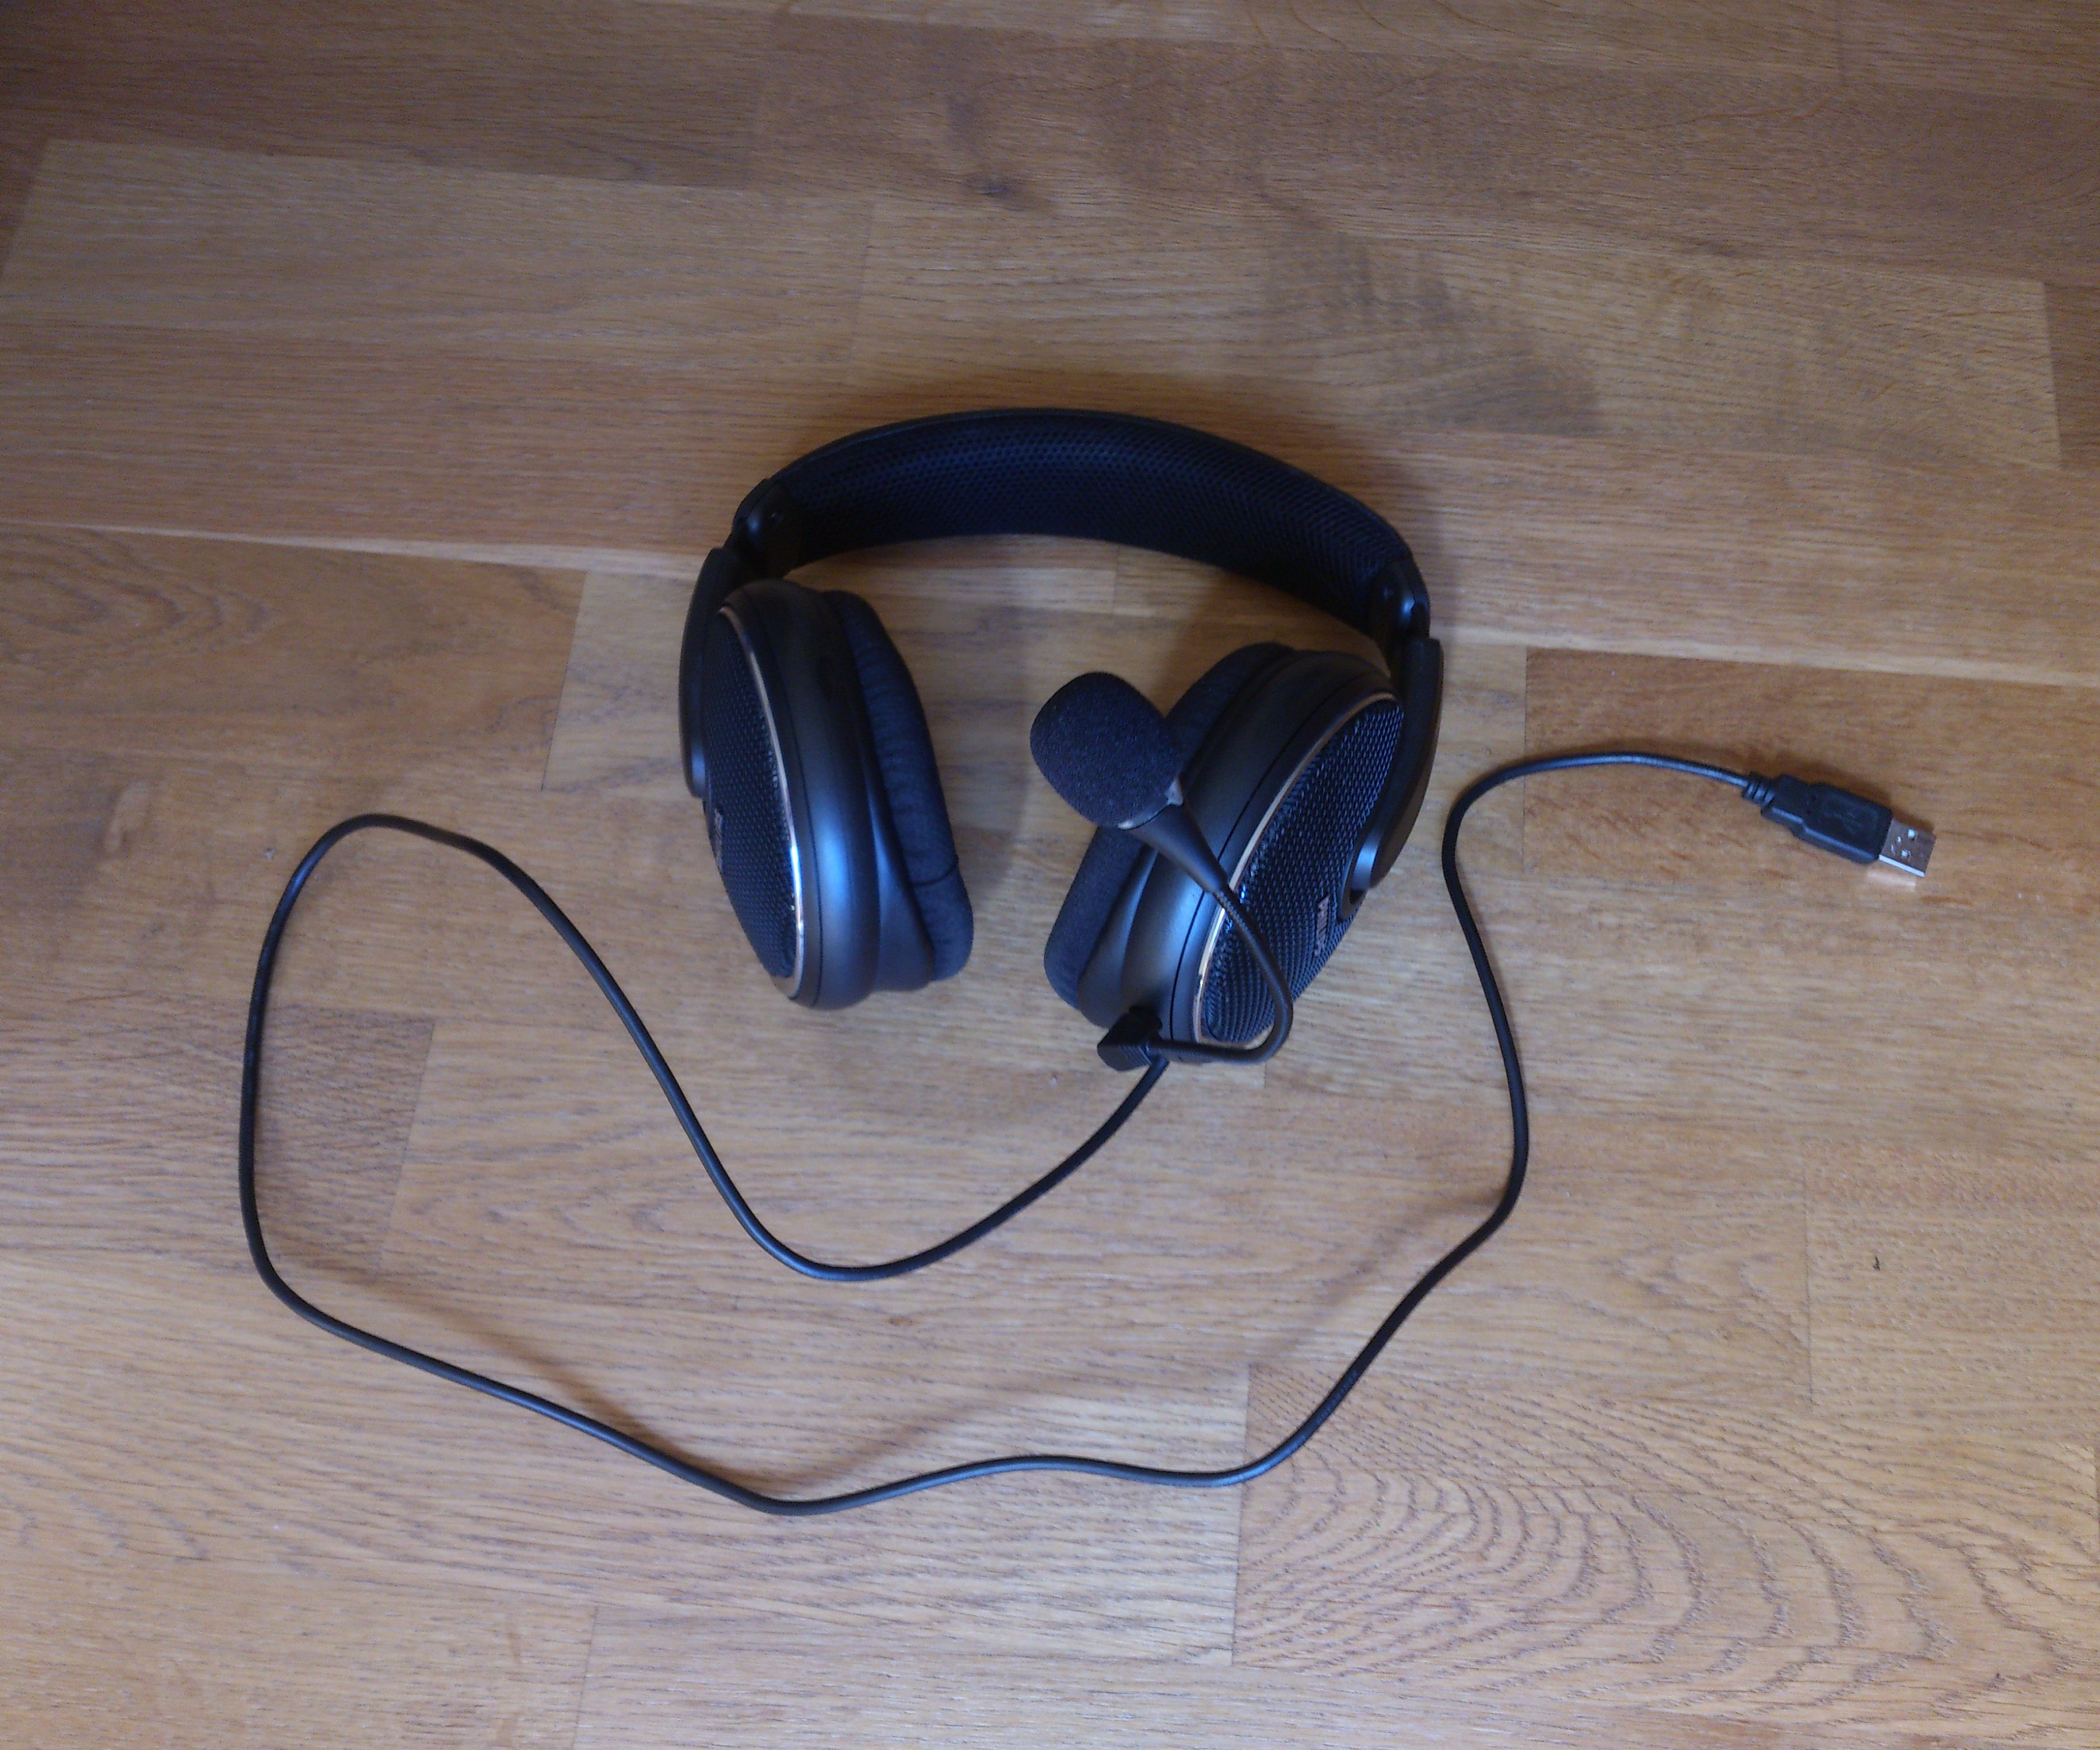 Make Your Own USB Headset : 5 Steps - InstructablesInstructables